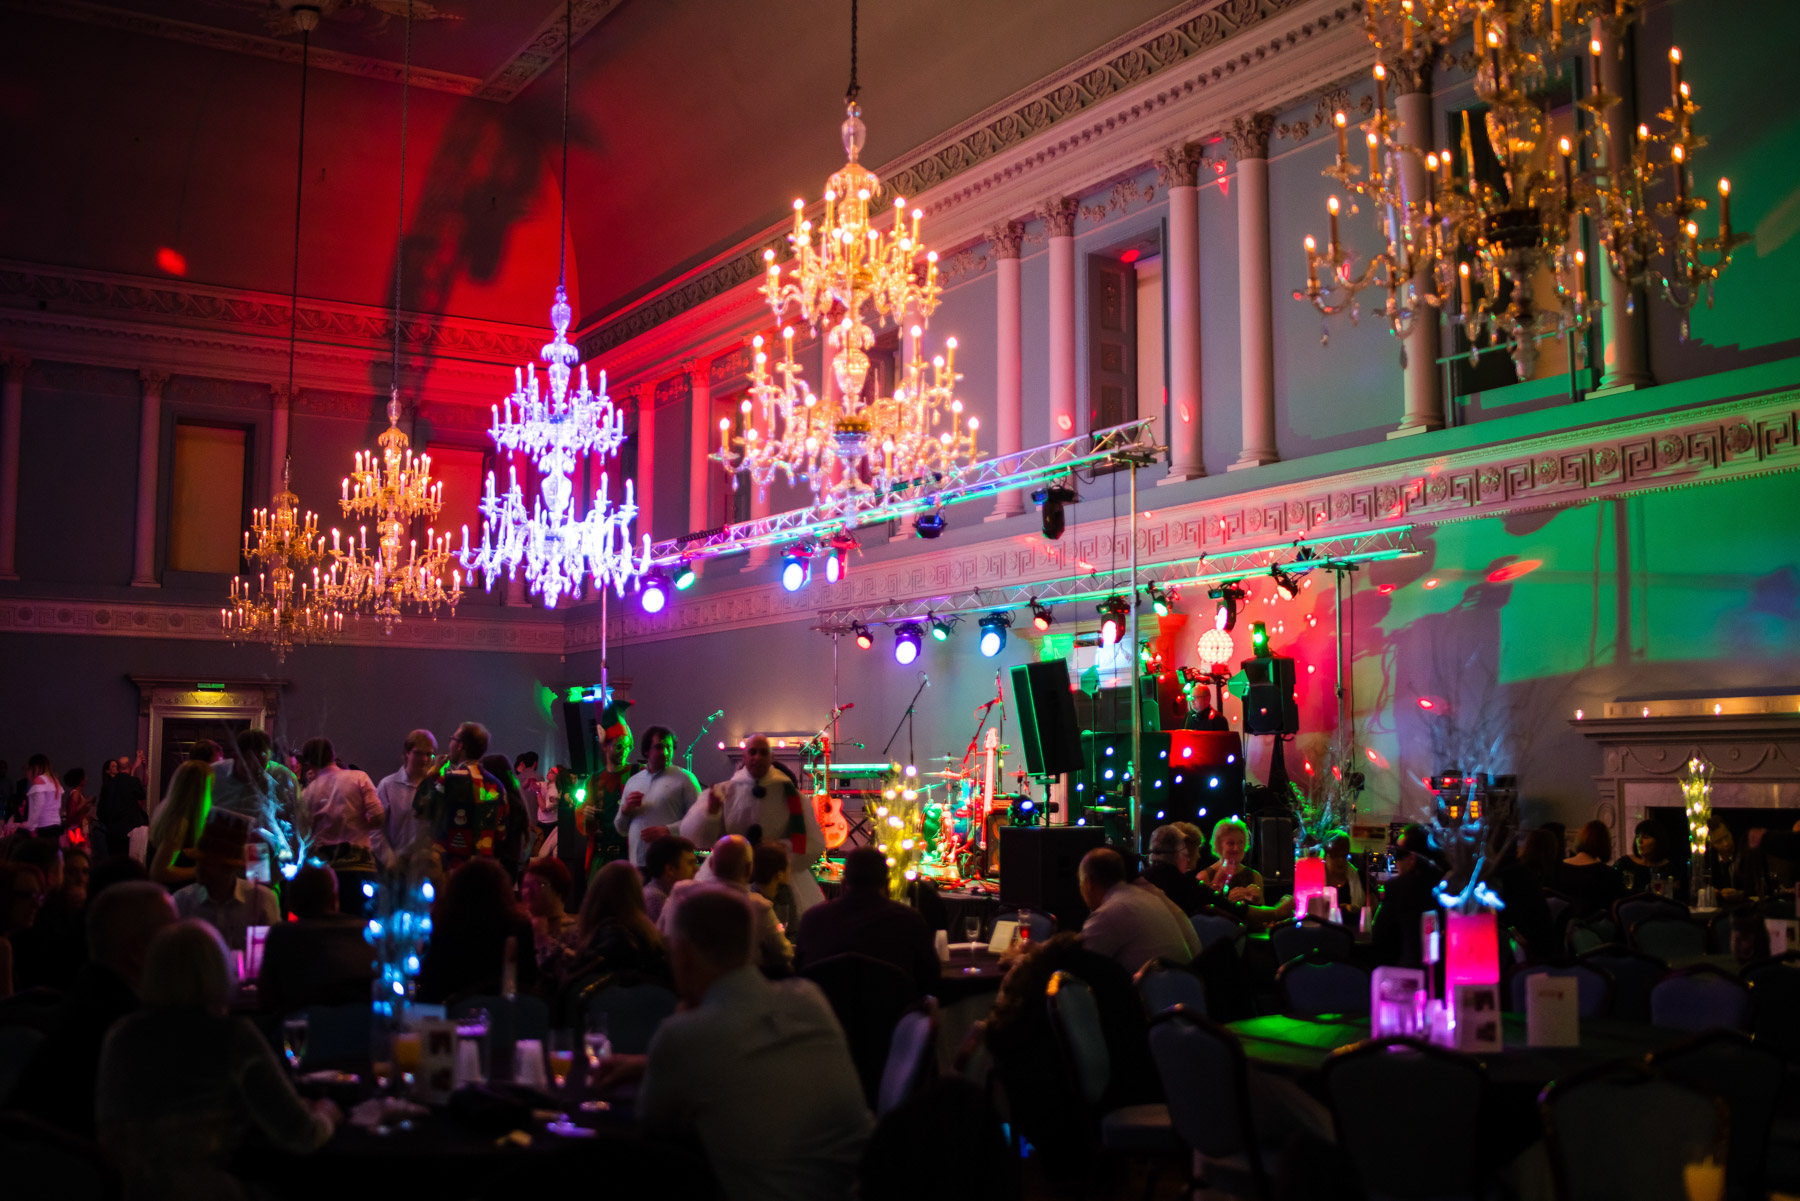 Christmas at the Assembly Rooms, Paolo Ferla Photography